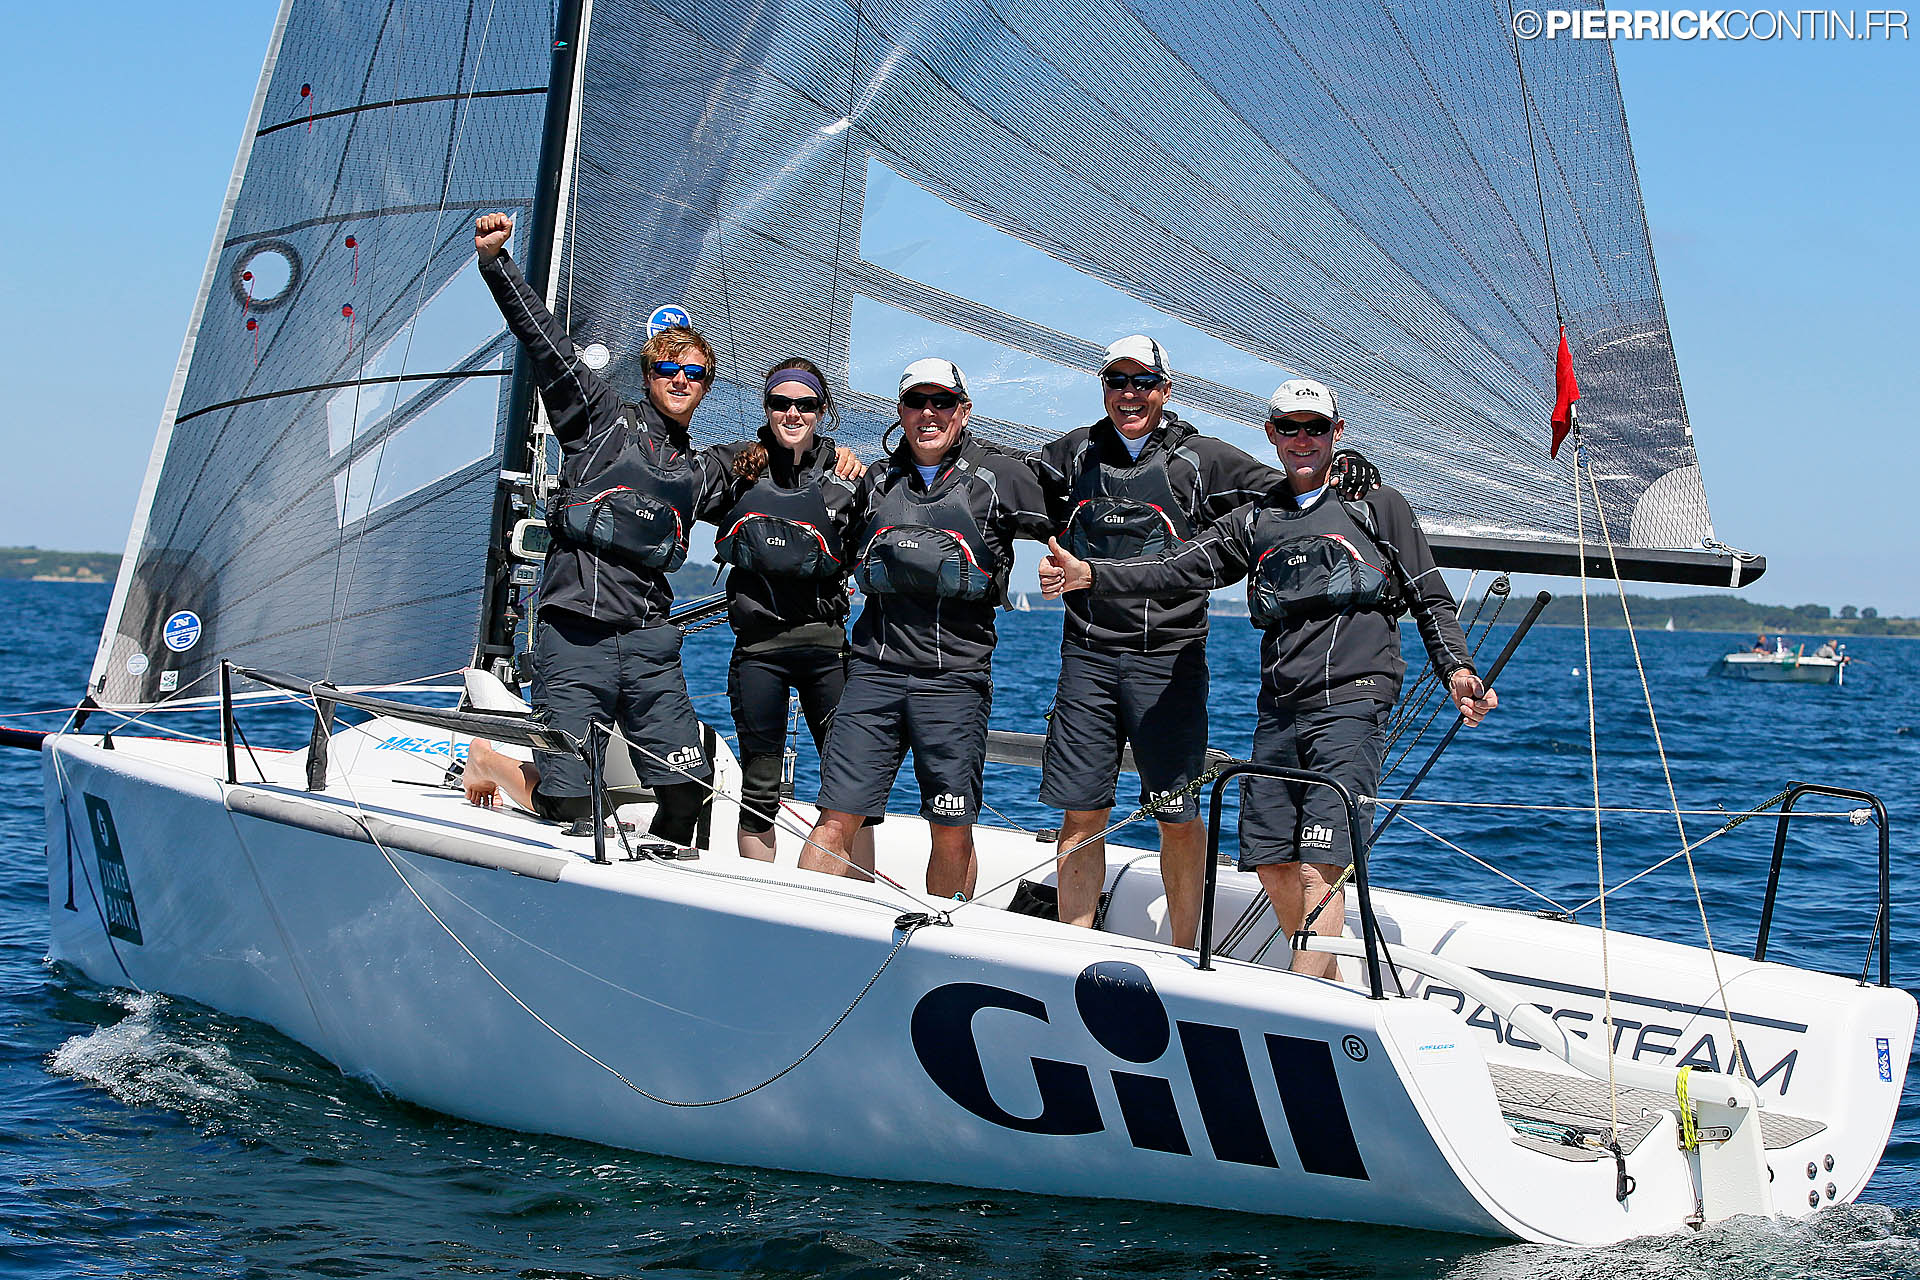 Miles Quinton's Gill Race Team GBR694 with Geoffry Carveth in helm - photo Pierr